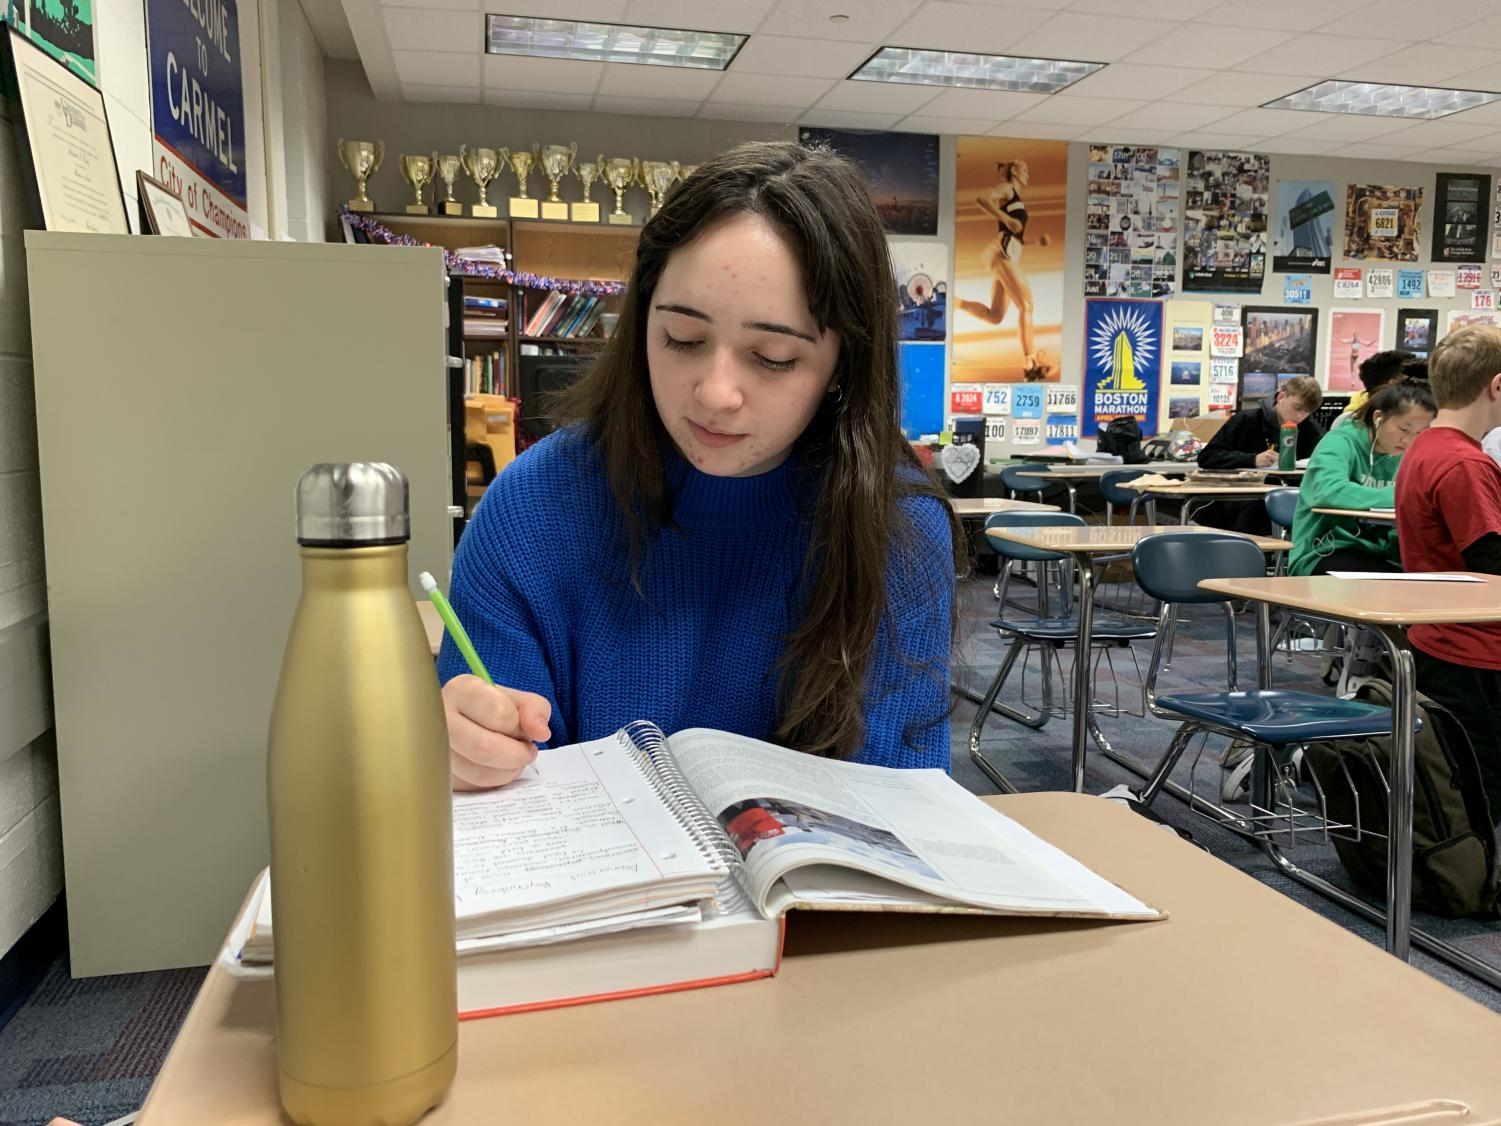 Nina Metaxas, CMYC vice president and senior, works on homework during SRT. According to Metaxas, CMYC is currently working on finalizing the details for its upcoming dodgeball tournament, which will take place Jan. 17.